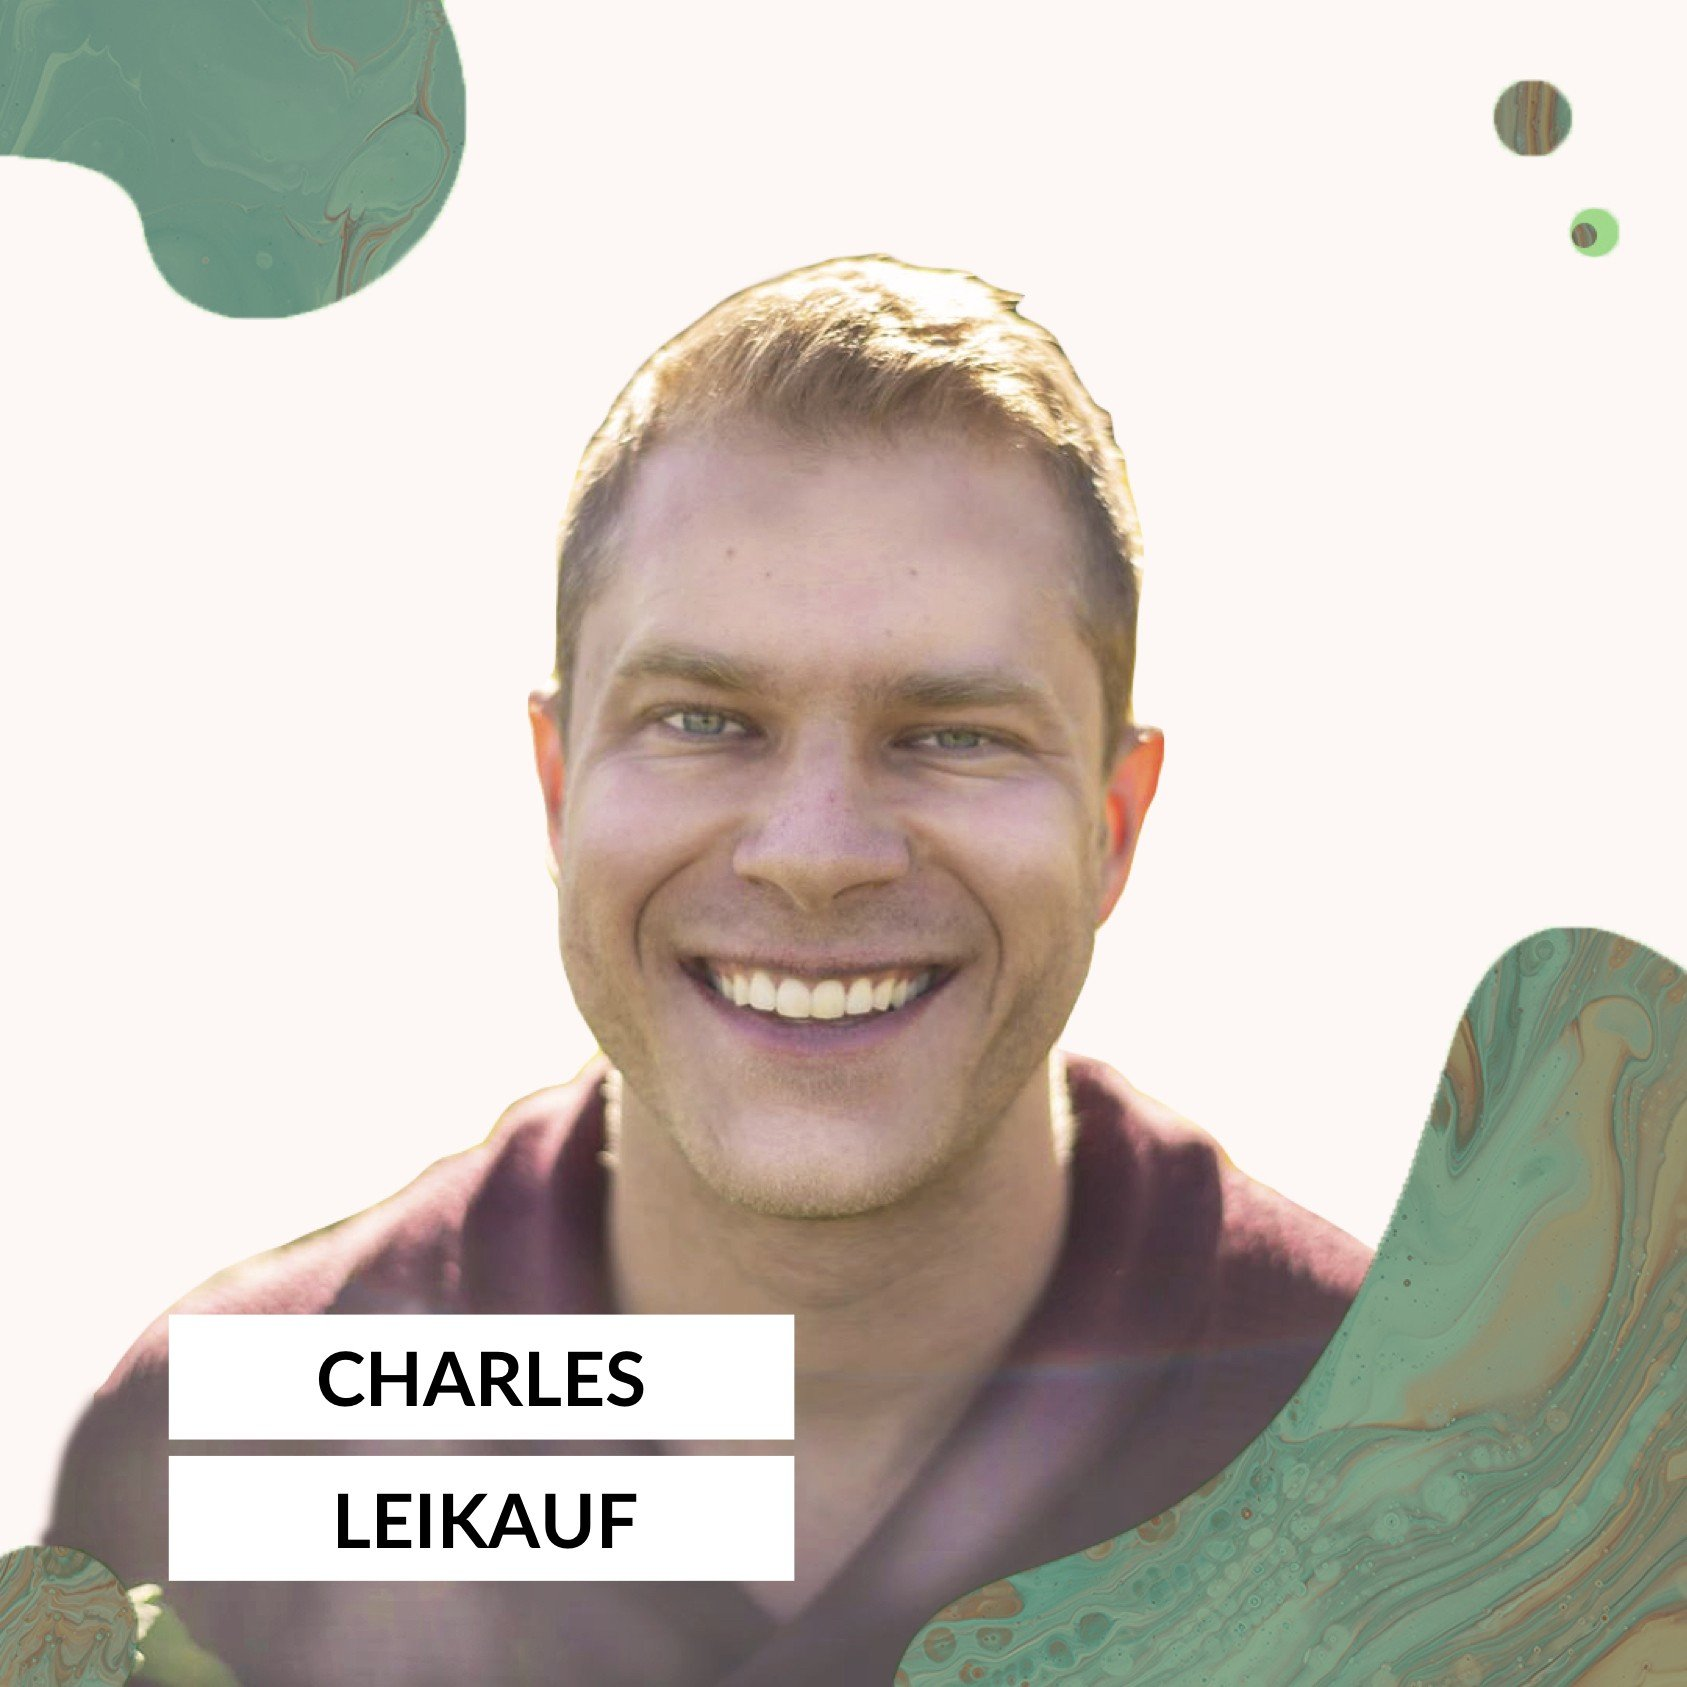 #6 Charles Leikauf – What Financial Levers Do You Need to Pull to Sell Your eCommerce Business for 100mm?